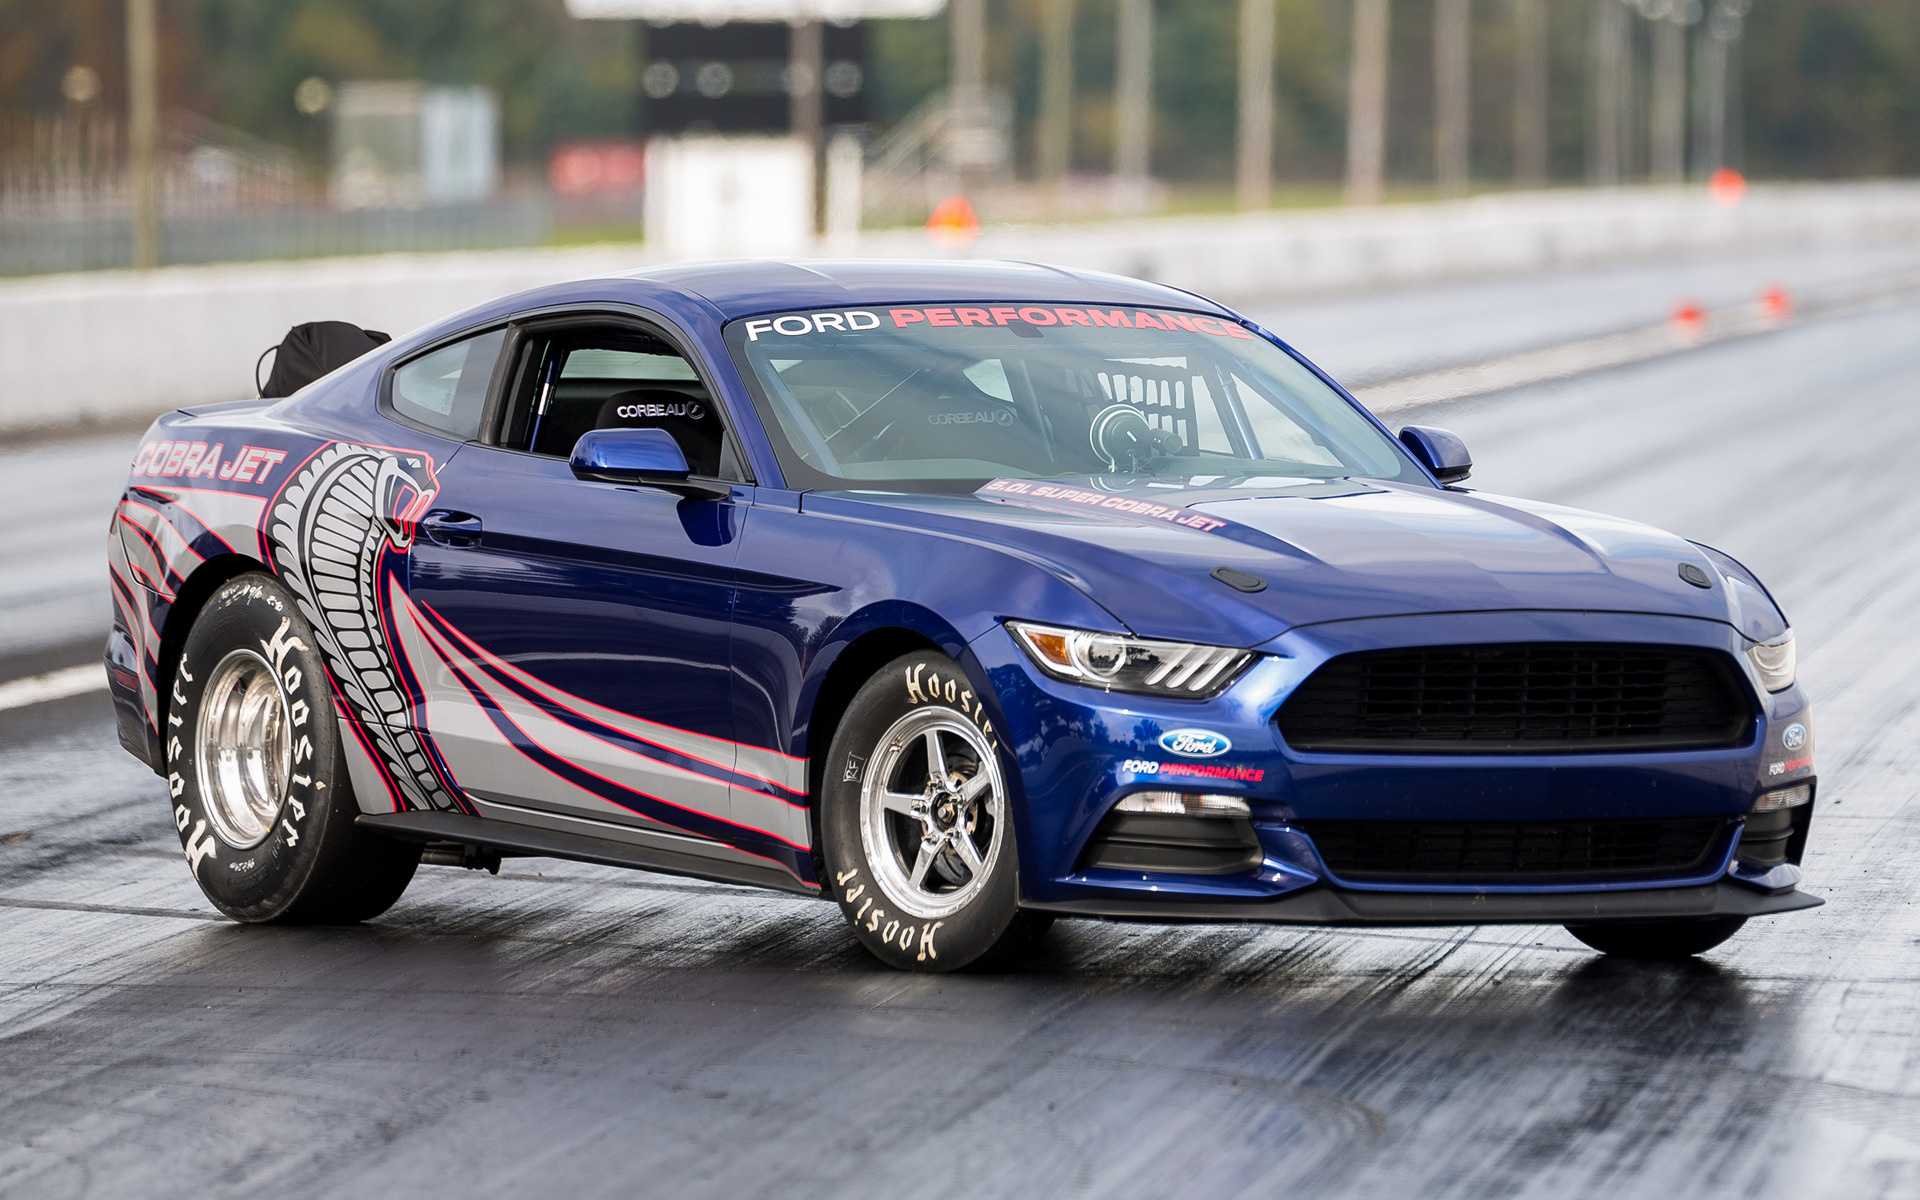 Ford Mustang Cobra Jet Drag Car 2016 Wallpapers And Hd